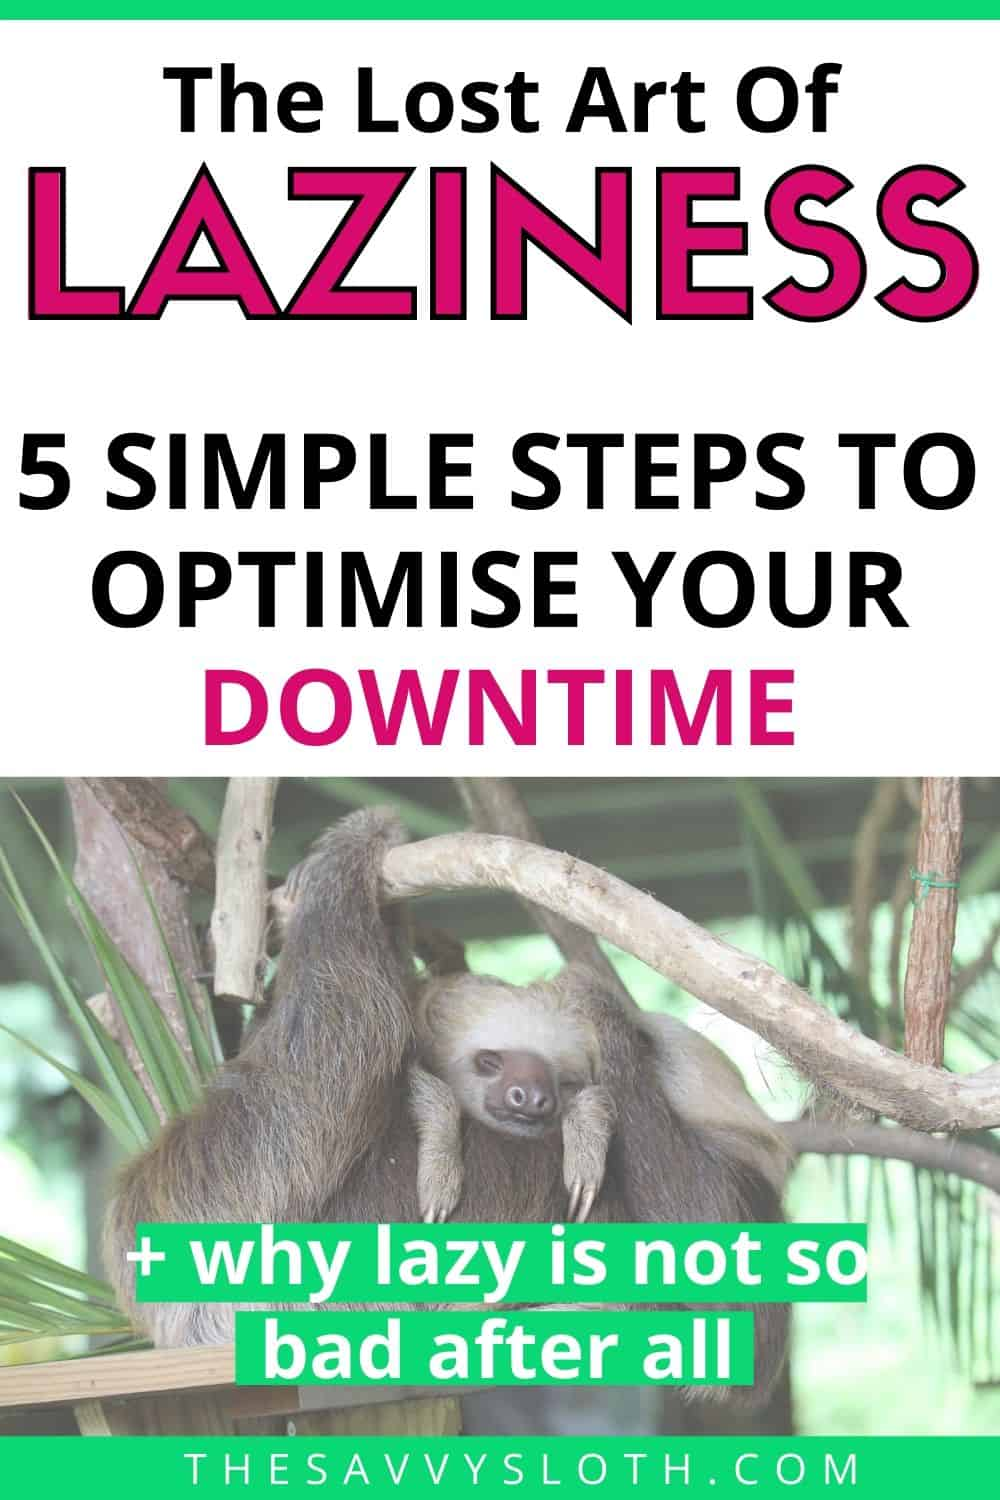 The lost art of laziness - 5 simple ways to optimise your downtime